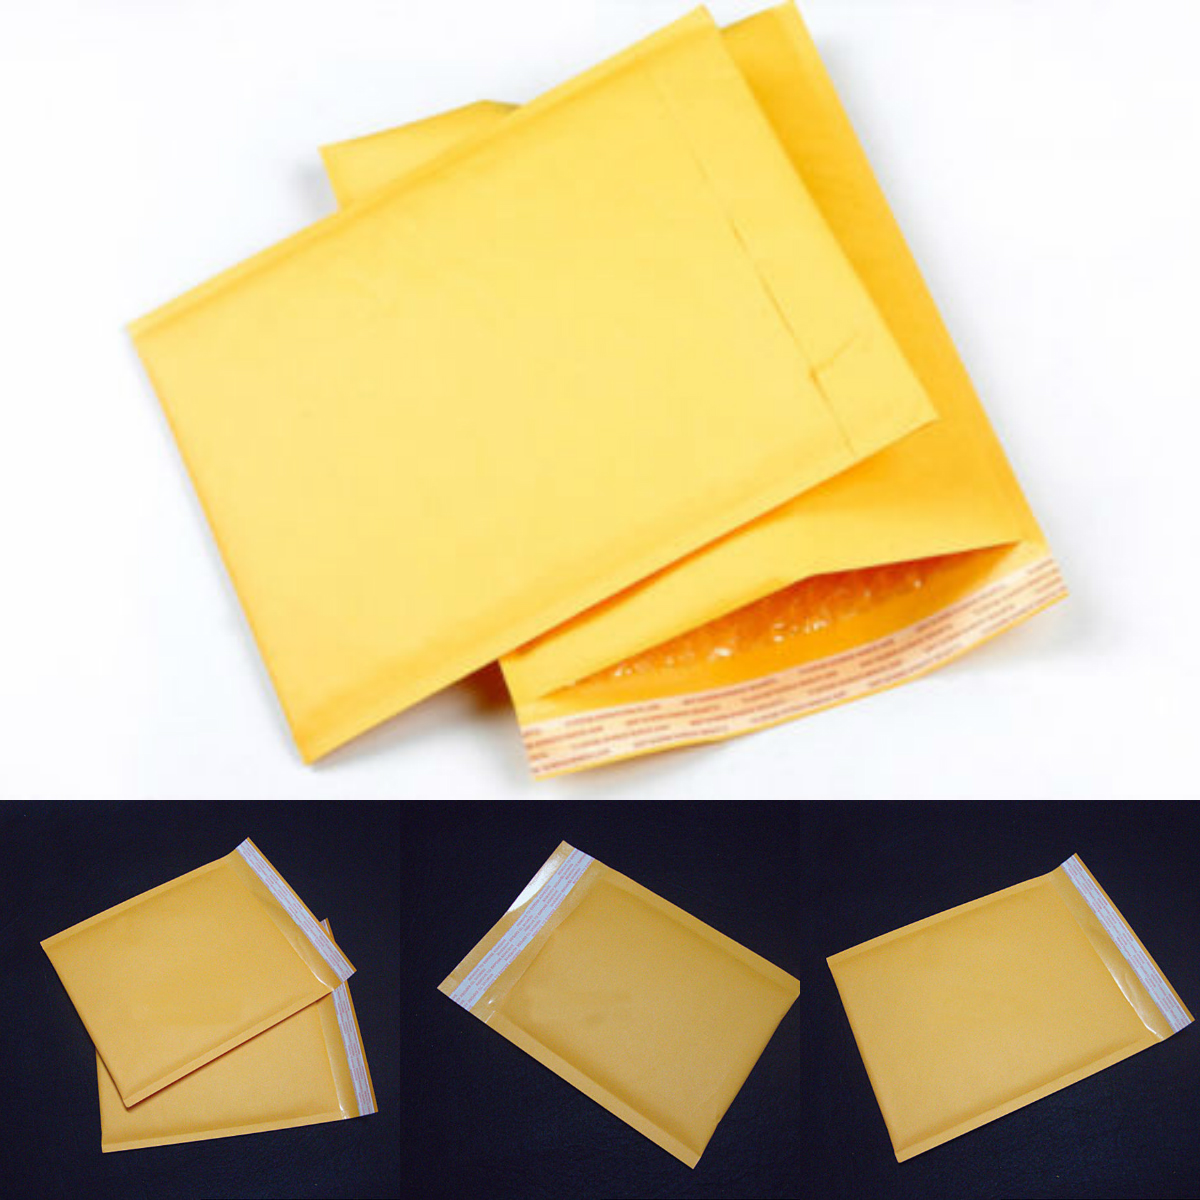 1/2/5/10PCS Kraft Bubble Mailers Padded Envelopes Shipping Bag Self Seal School Office Supplies Mailing Bags Paper Envelopes